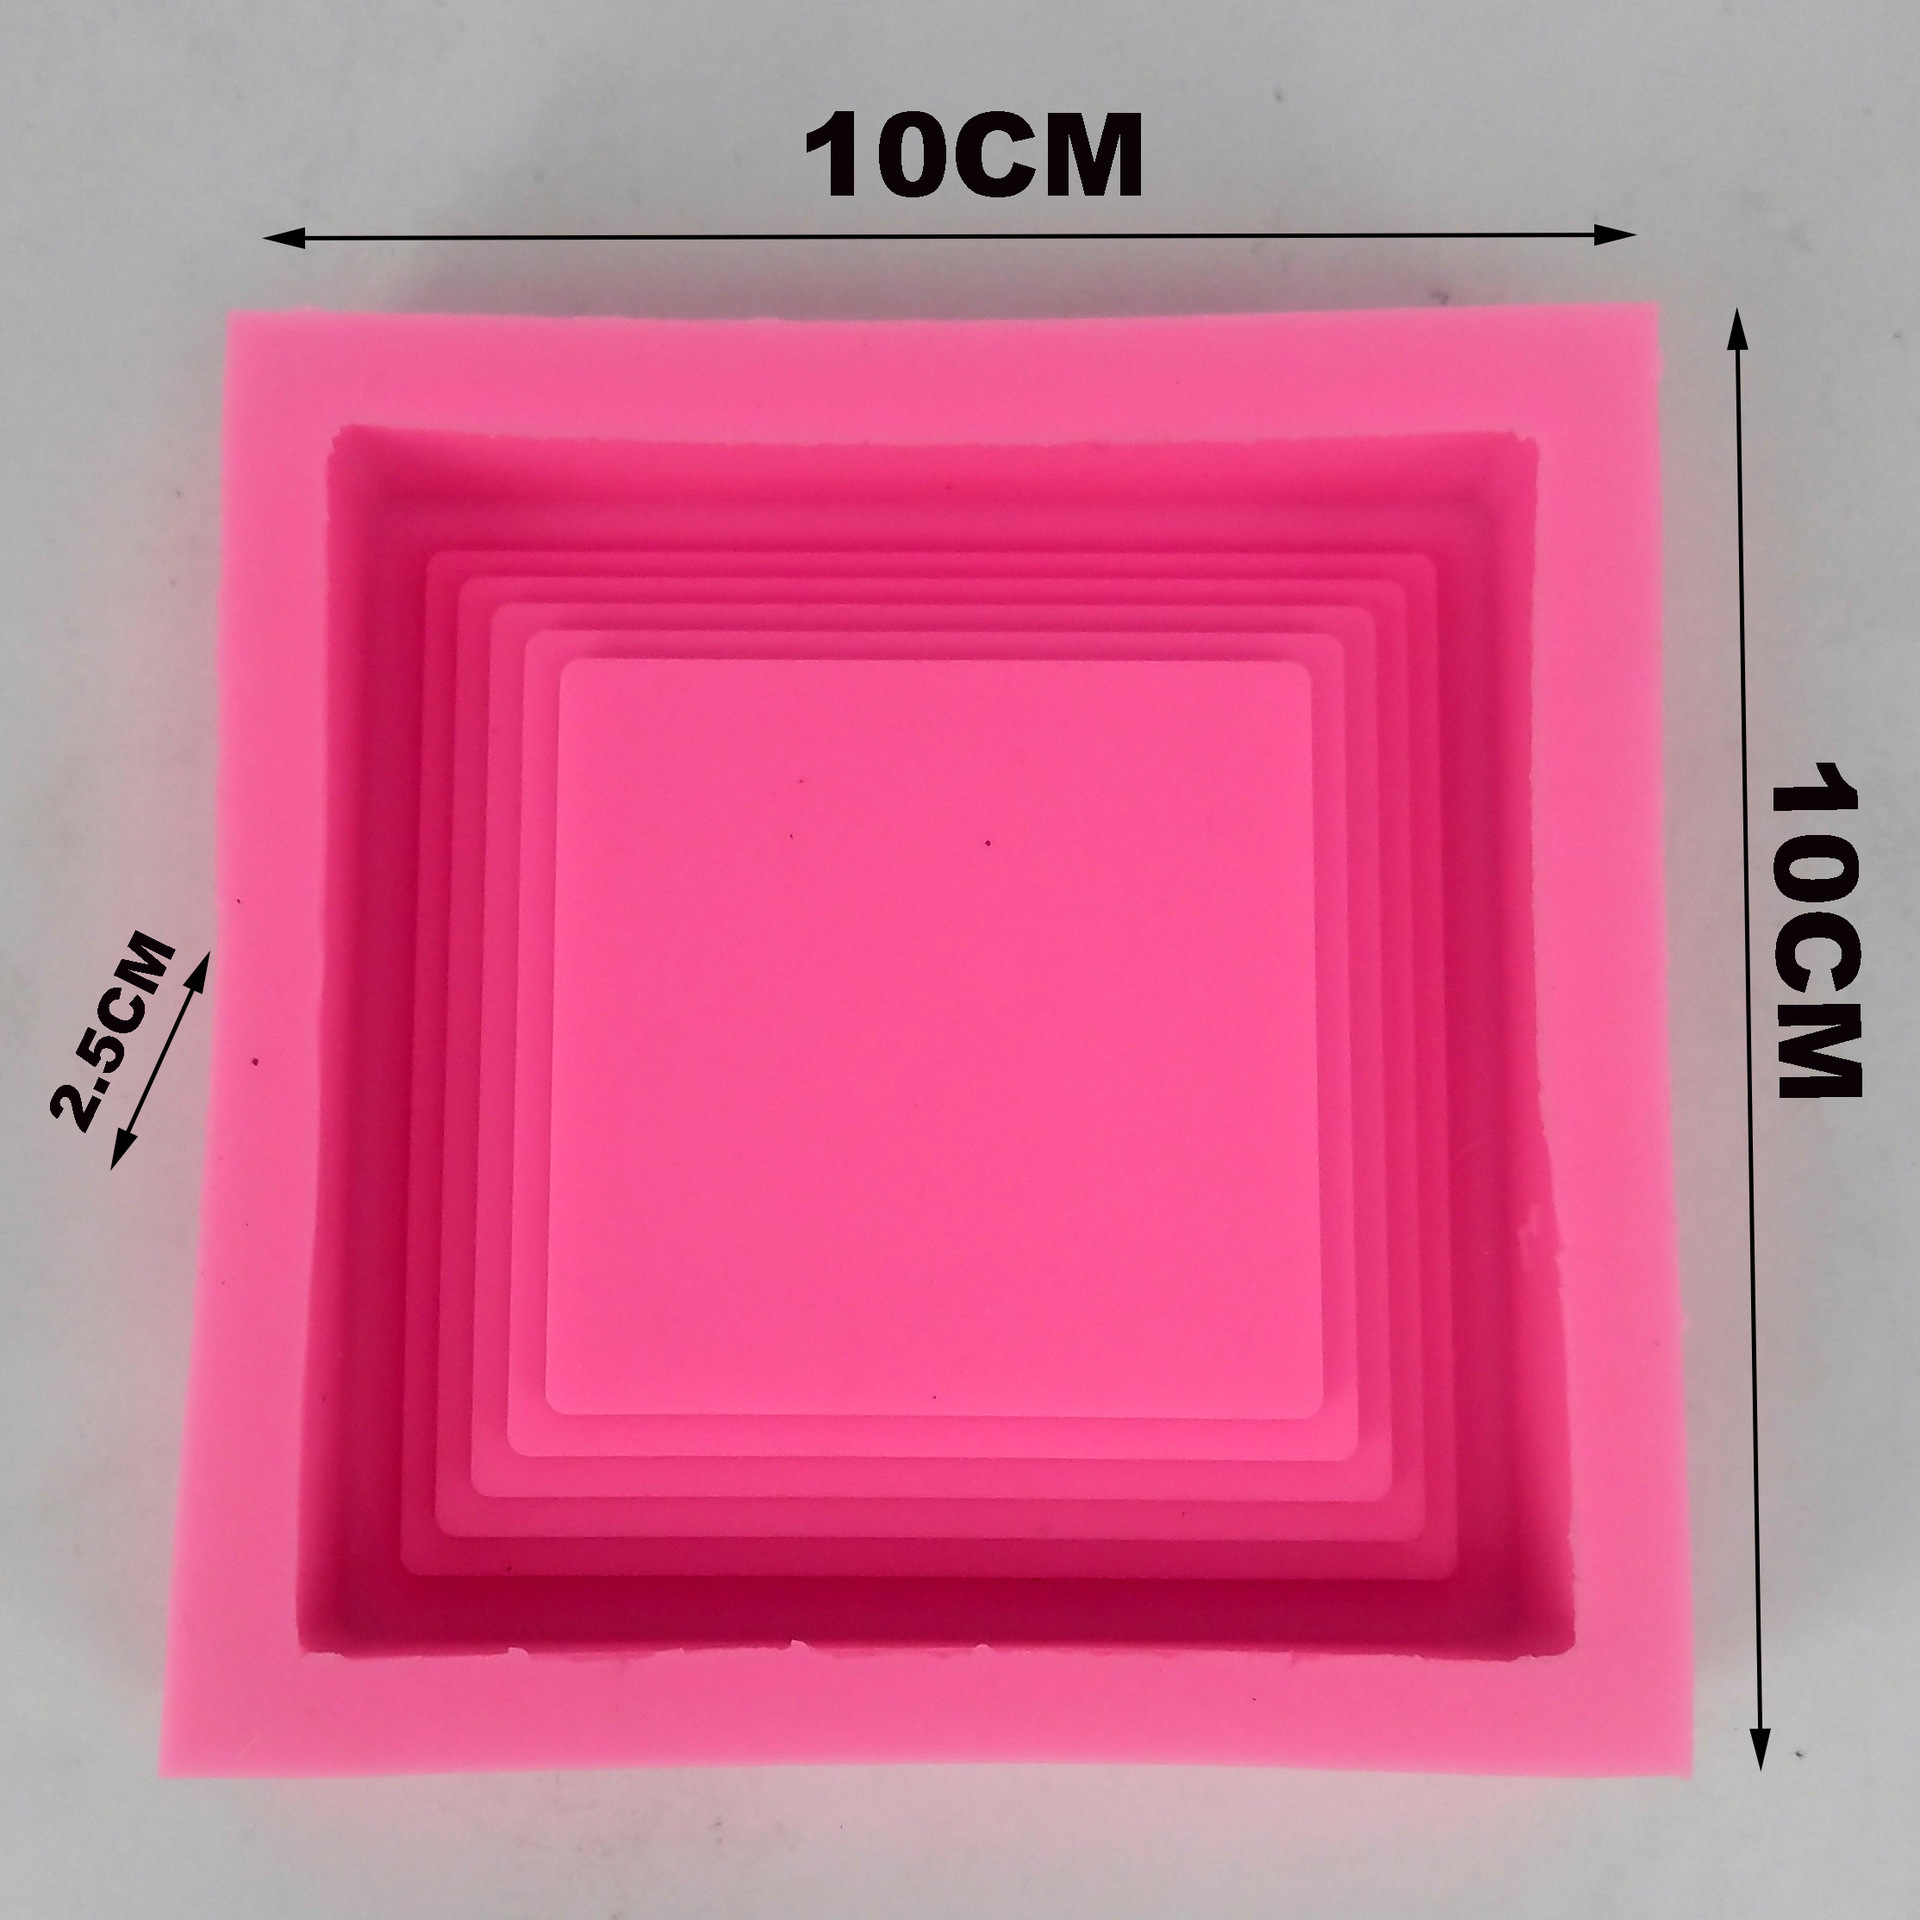 Small Square flowerpot tray making concrete mould Handmade Cement pot holder silicone mold